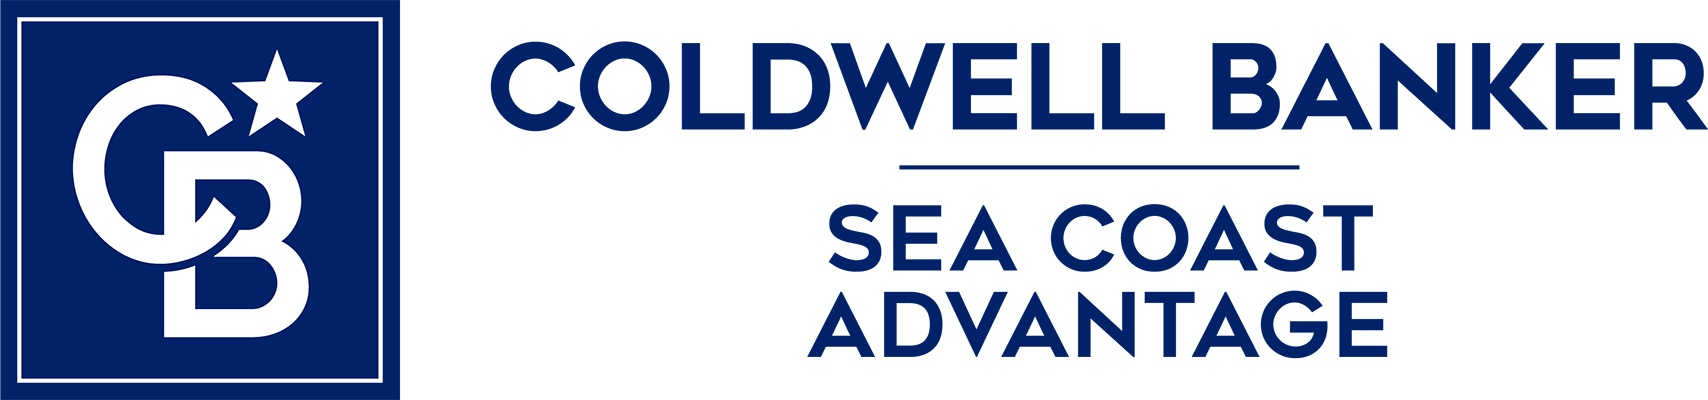 Joy Williams - Coldwell Banker Sea Coast Advantage Realty Logo